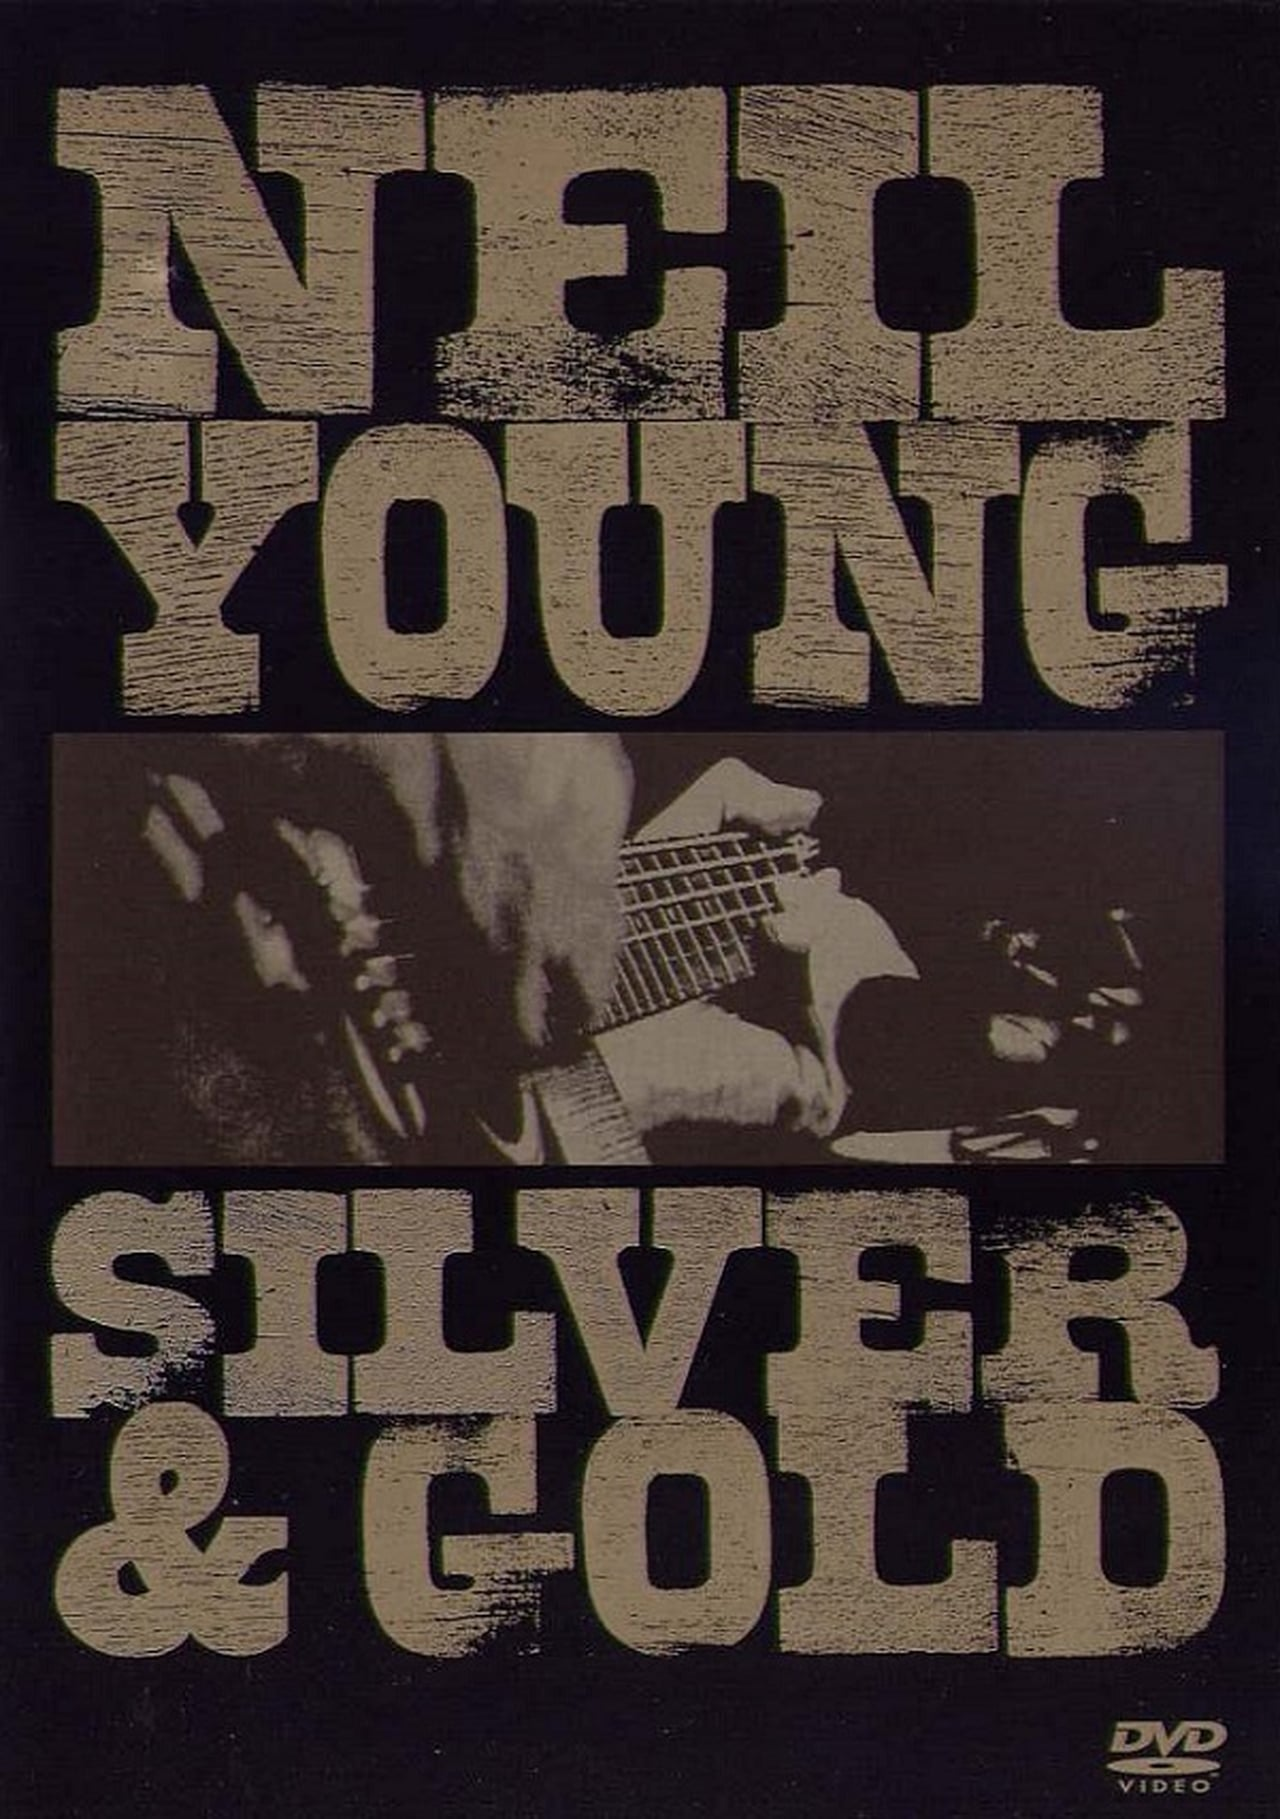 Neil Young: Silver & Gold